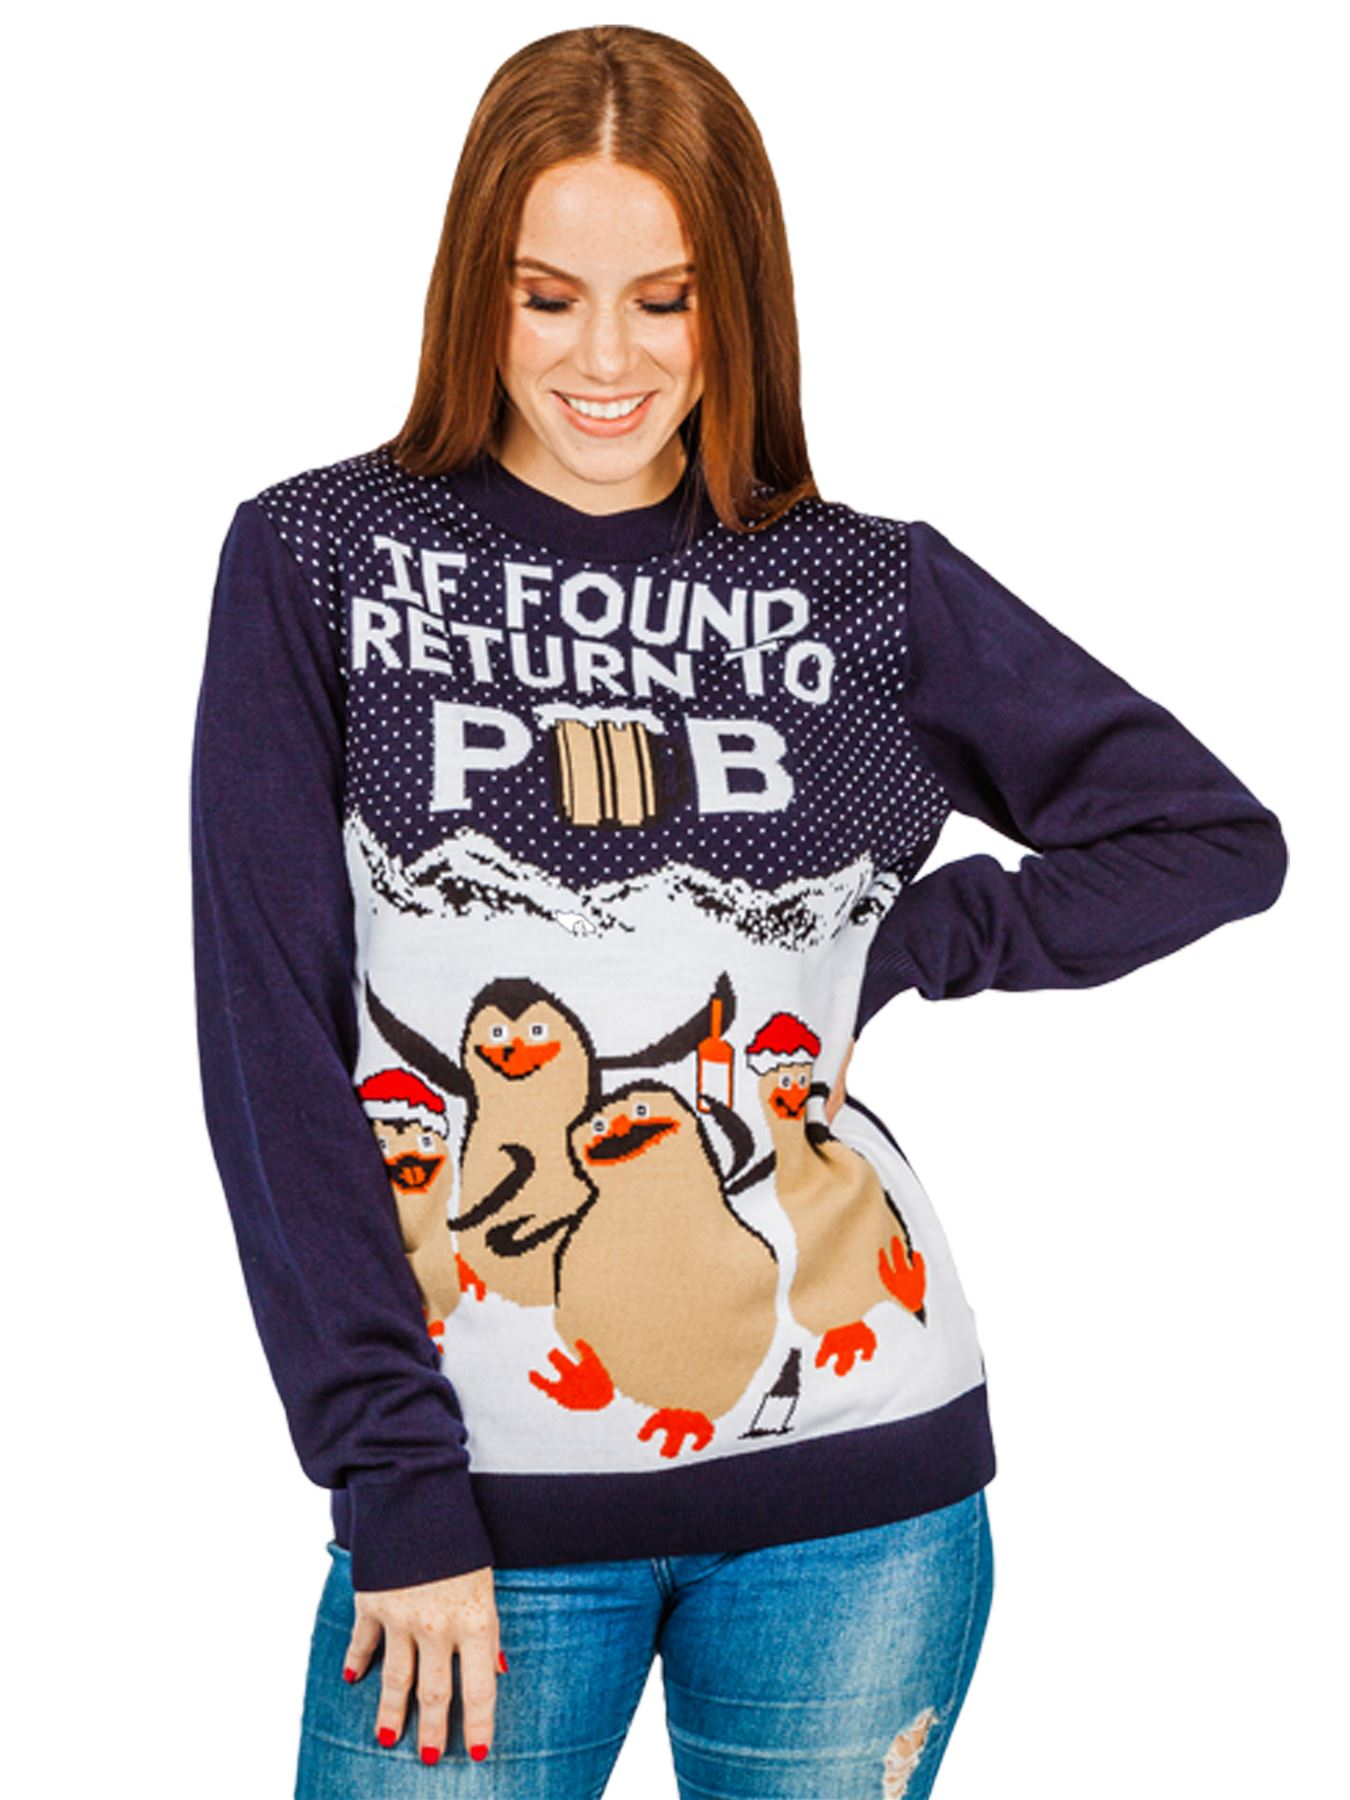 Unisex-Christmas-Jumper-Ladies-Xmas-Snowman-Reindeer-Pub-Knitted-Party-Sweater